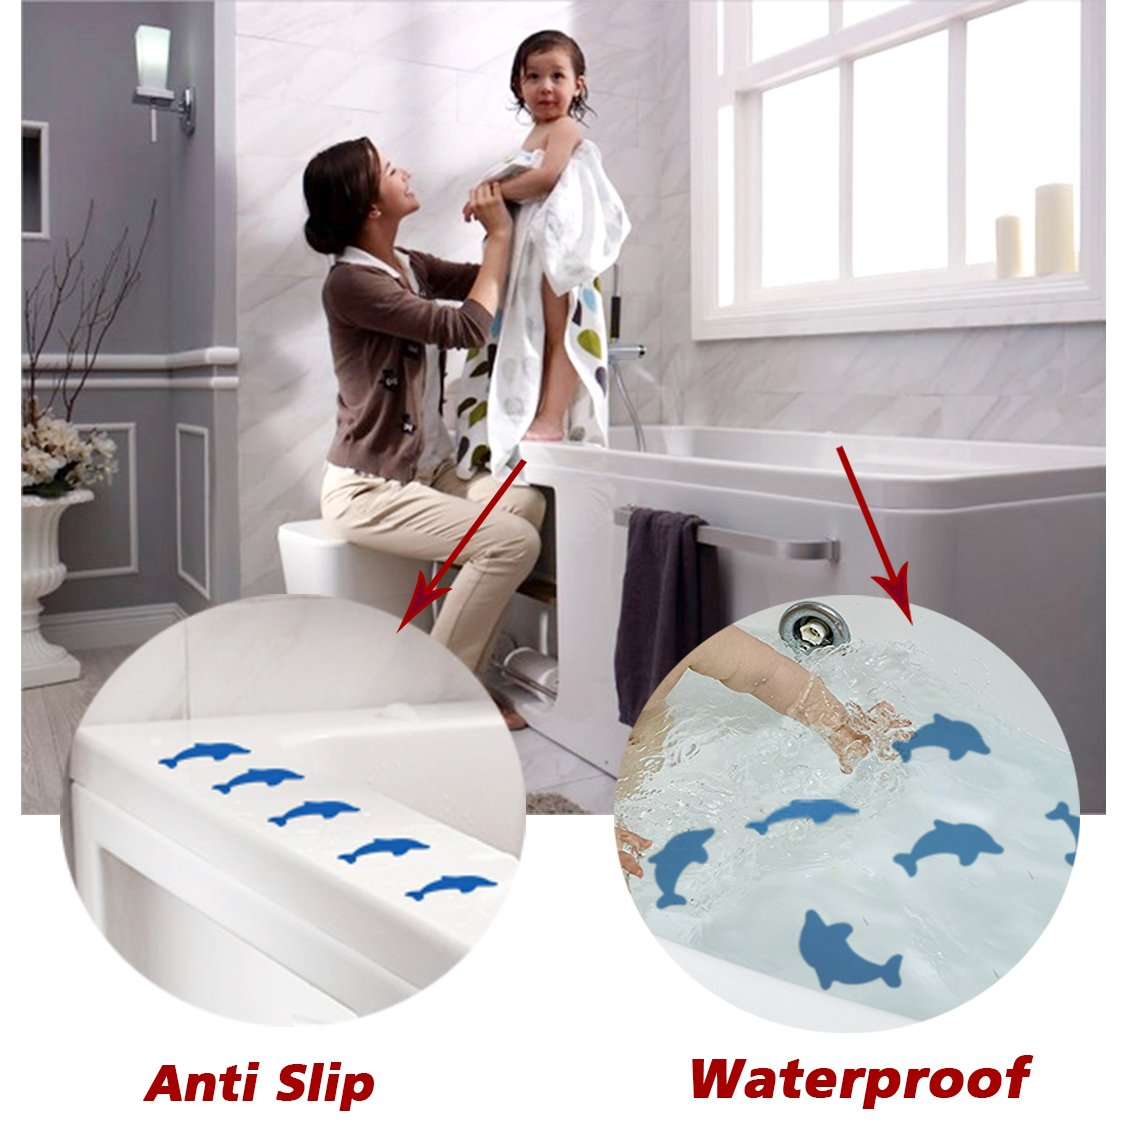 S/&X Non-Slip Bath Stickers,Grippy Dolphin Adhesive Safety Treads for Bathtubs//Showers//Pools//Bathrooms//Stairs,4.7 Inch X 3.9 Inch,12PCS Per Pack